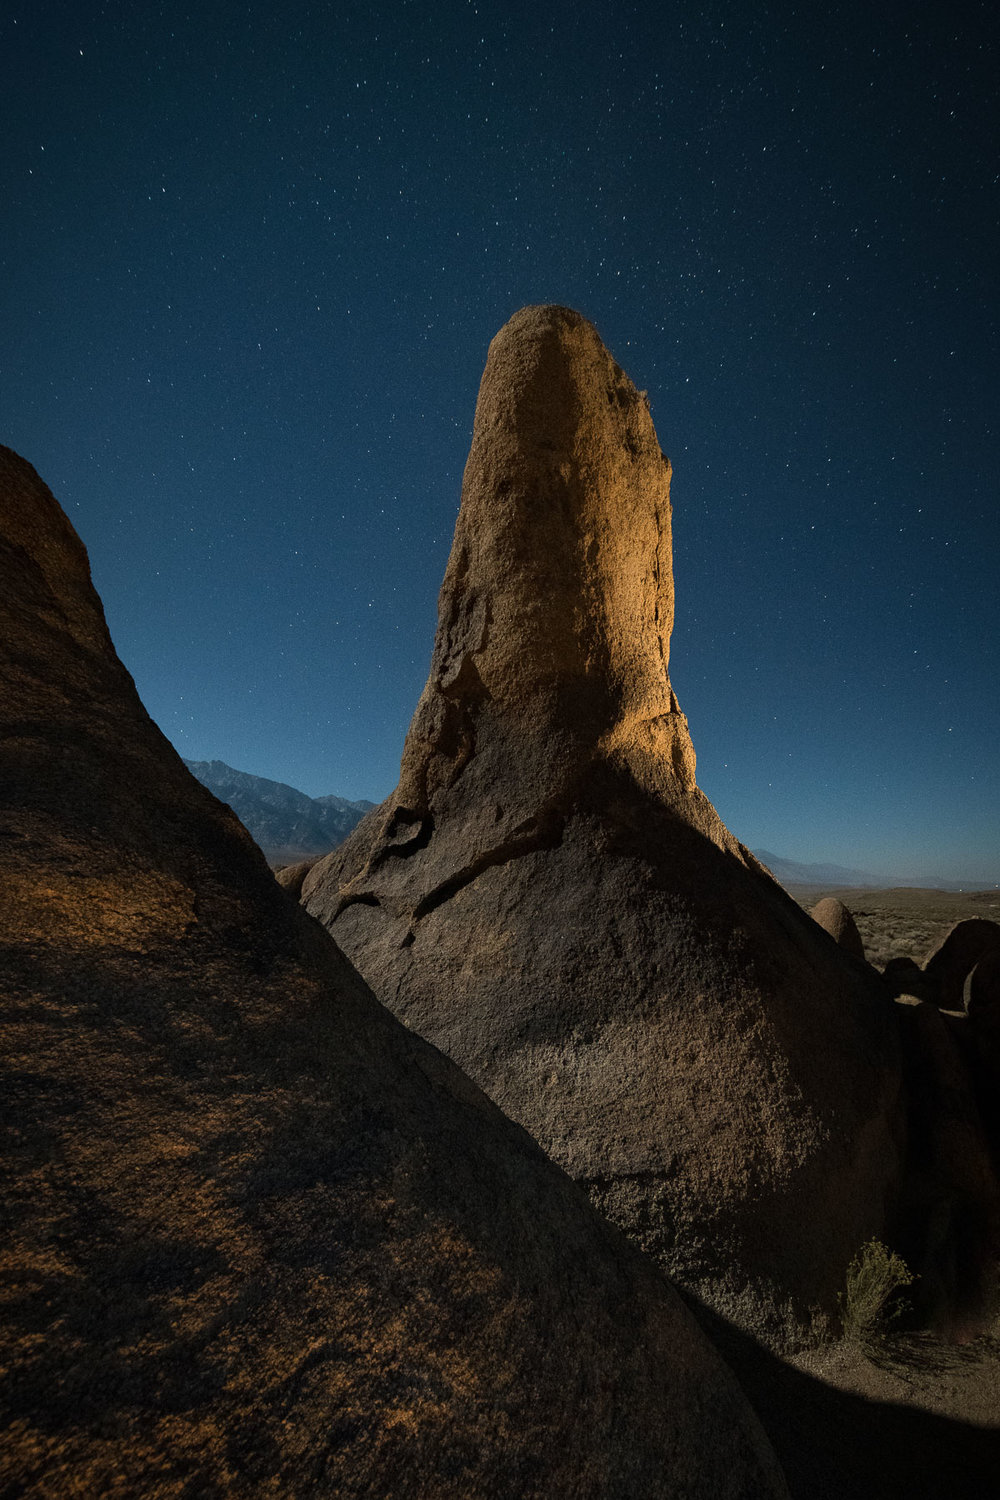 Alabama Hills, California.  Nikon D850 ,  Irix 11mm f/4 Blackstone  lens. 15 seconds, f/5.6, ISO 3200.